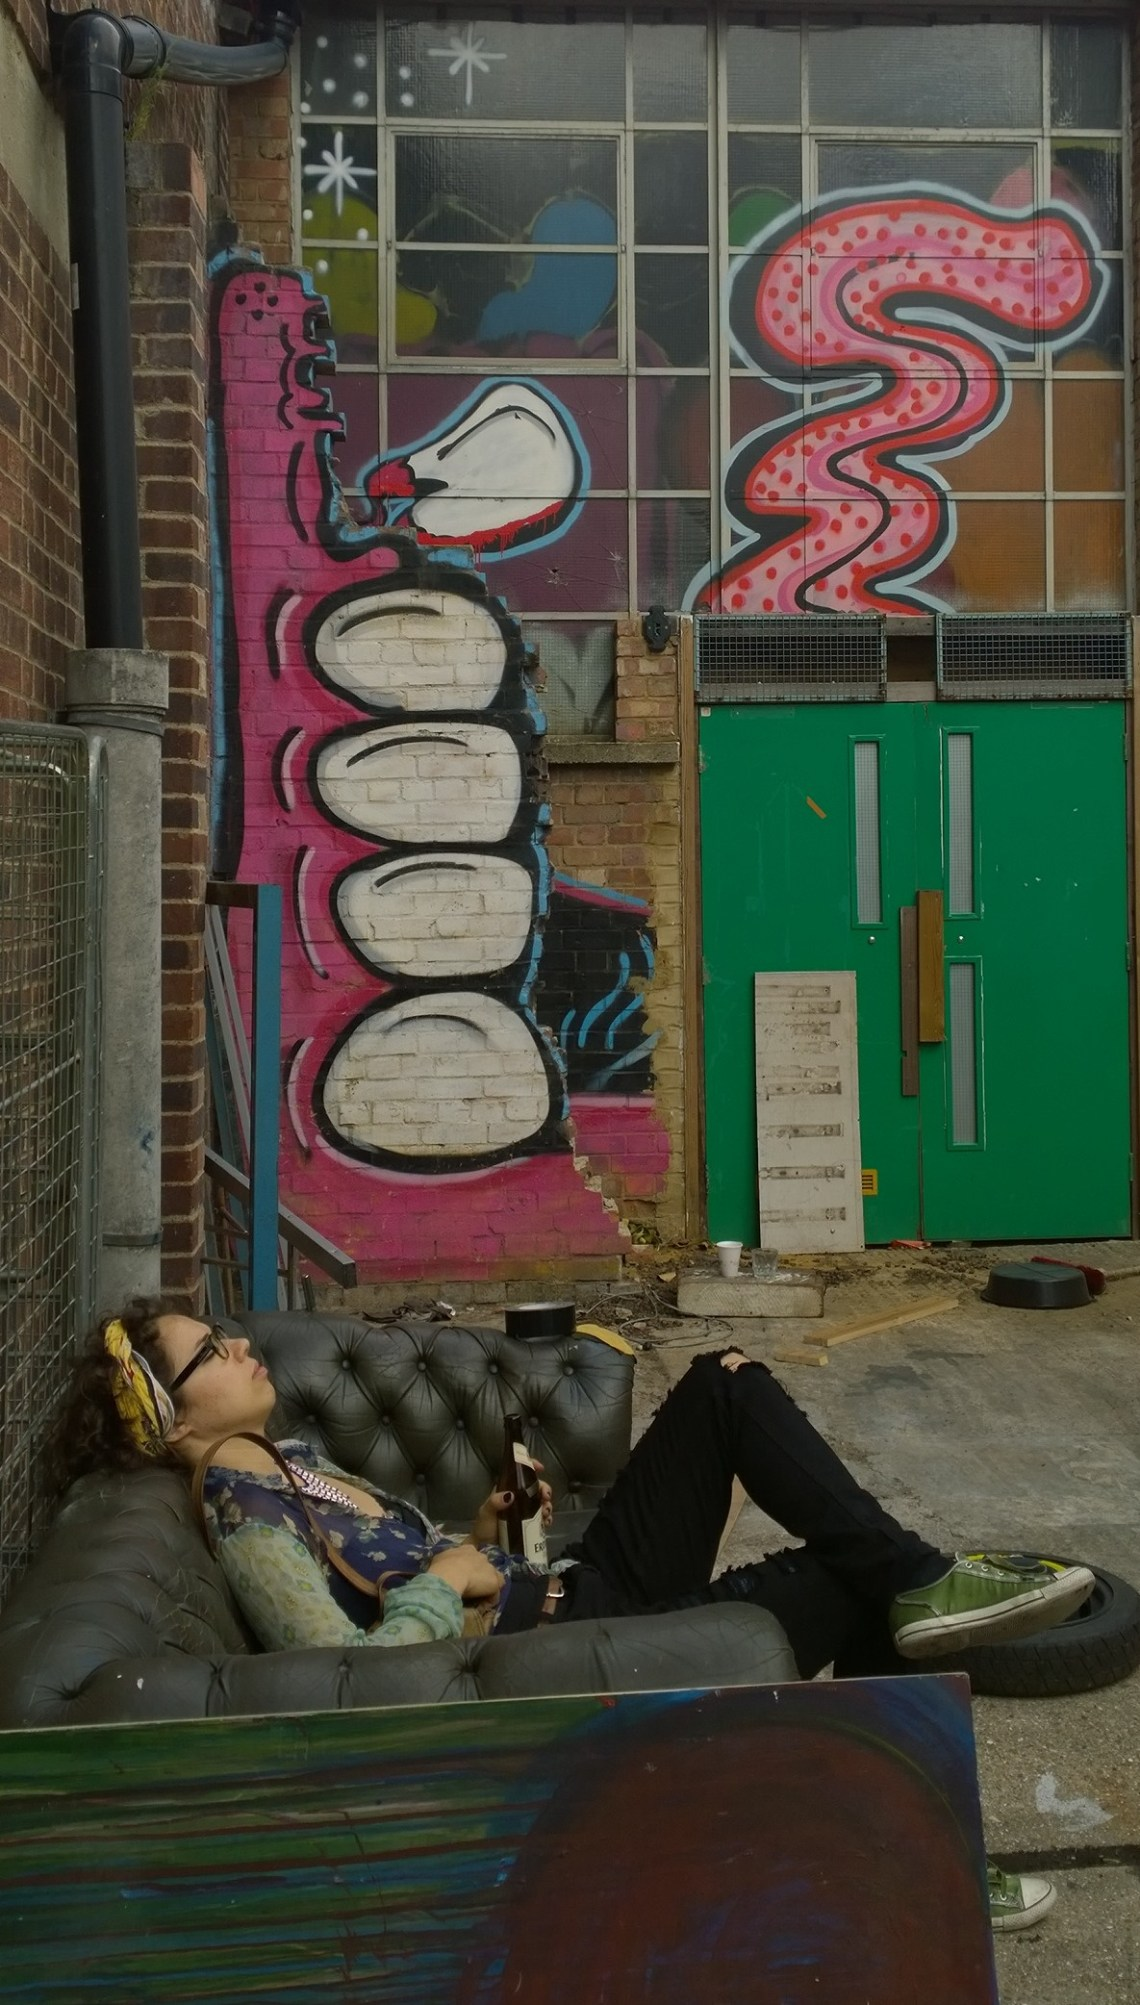 A woman relaxes next to a giant painting from Sweet Toof